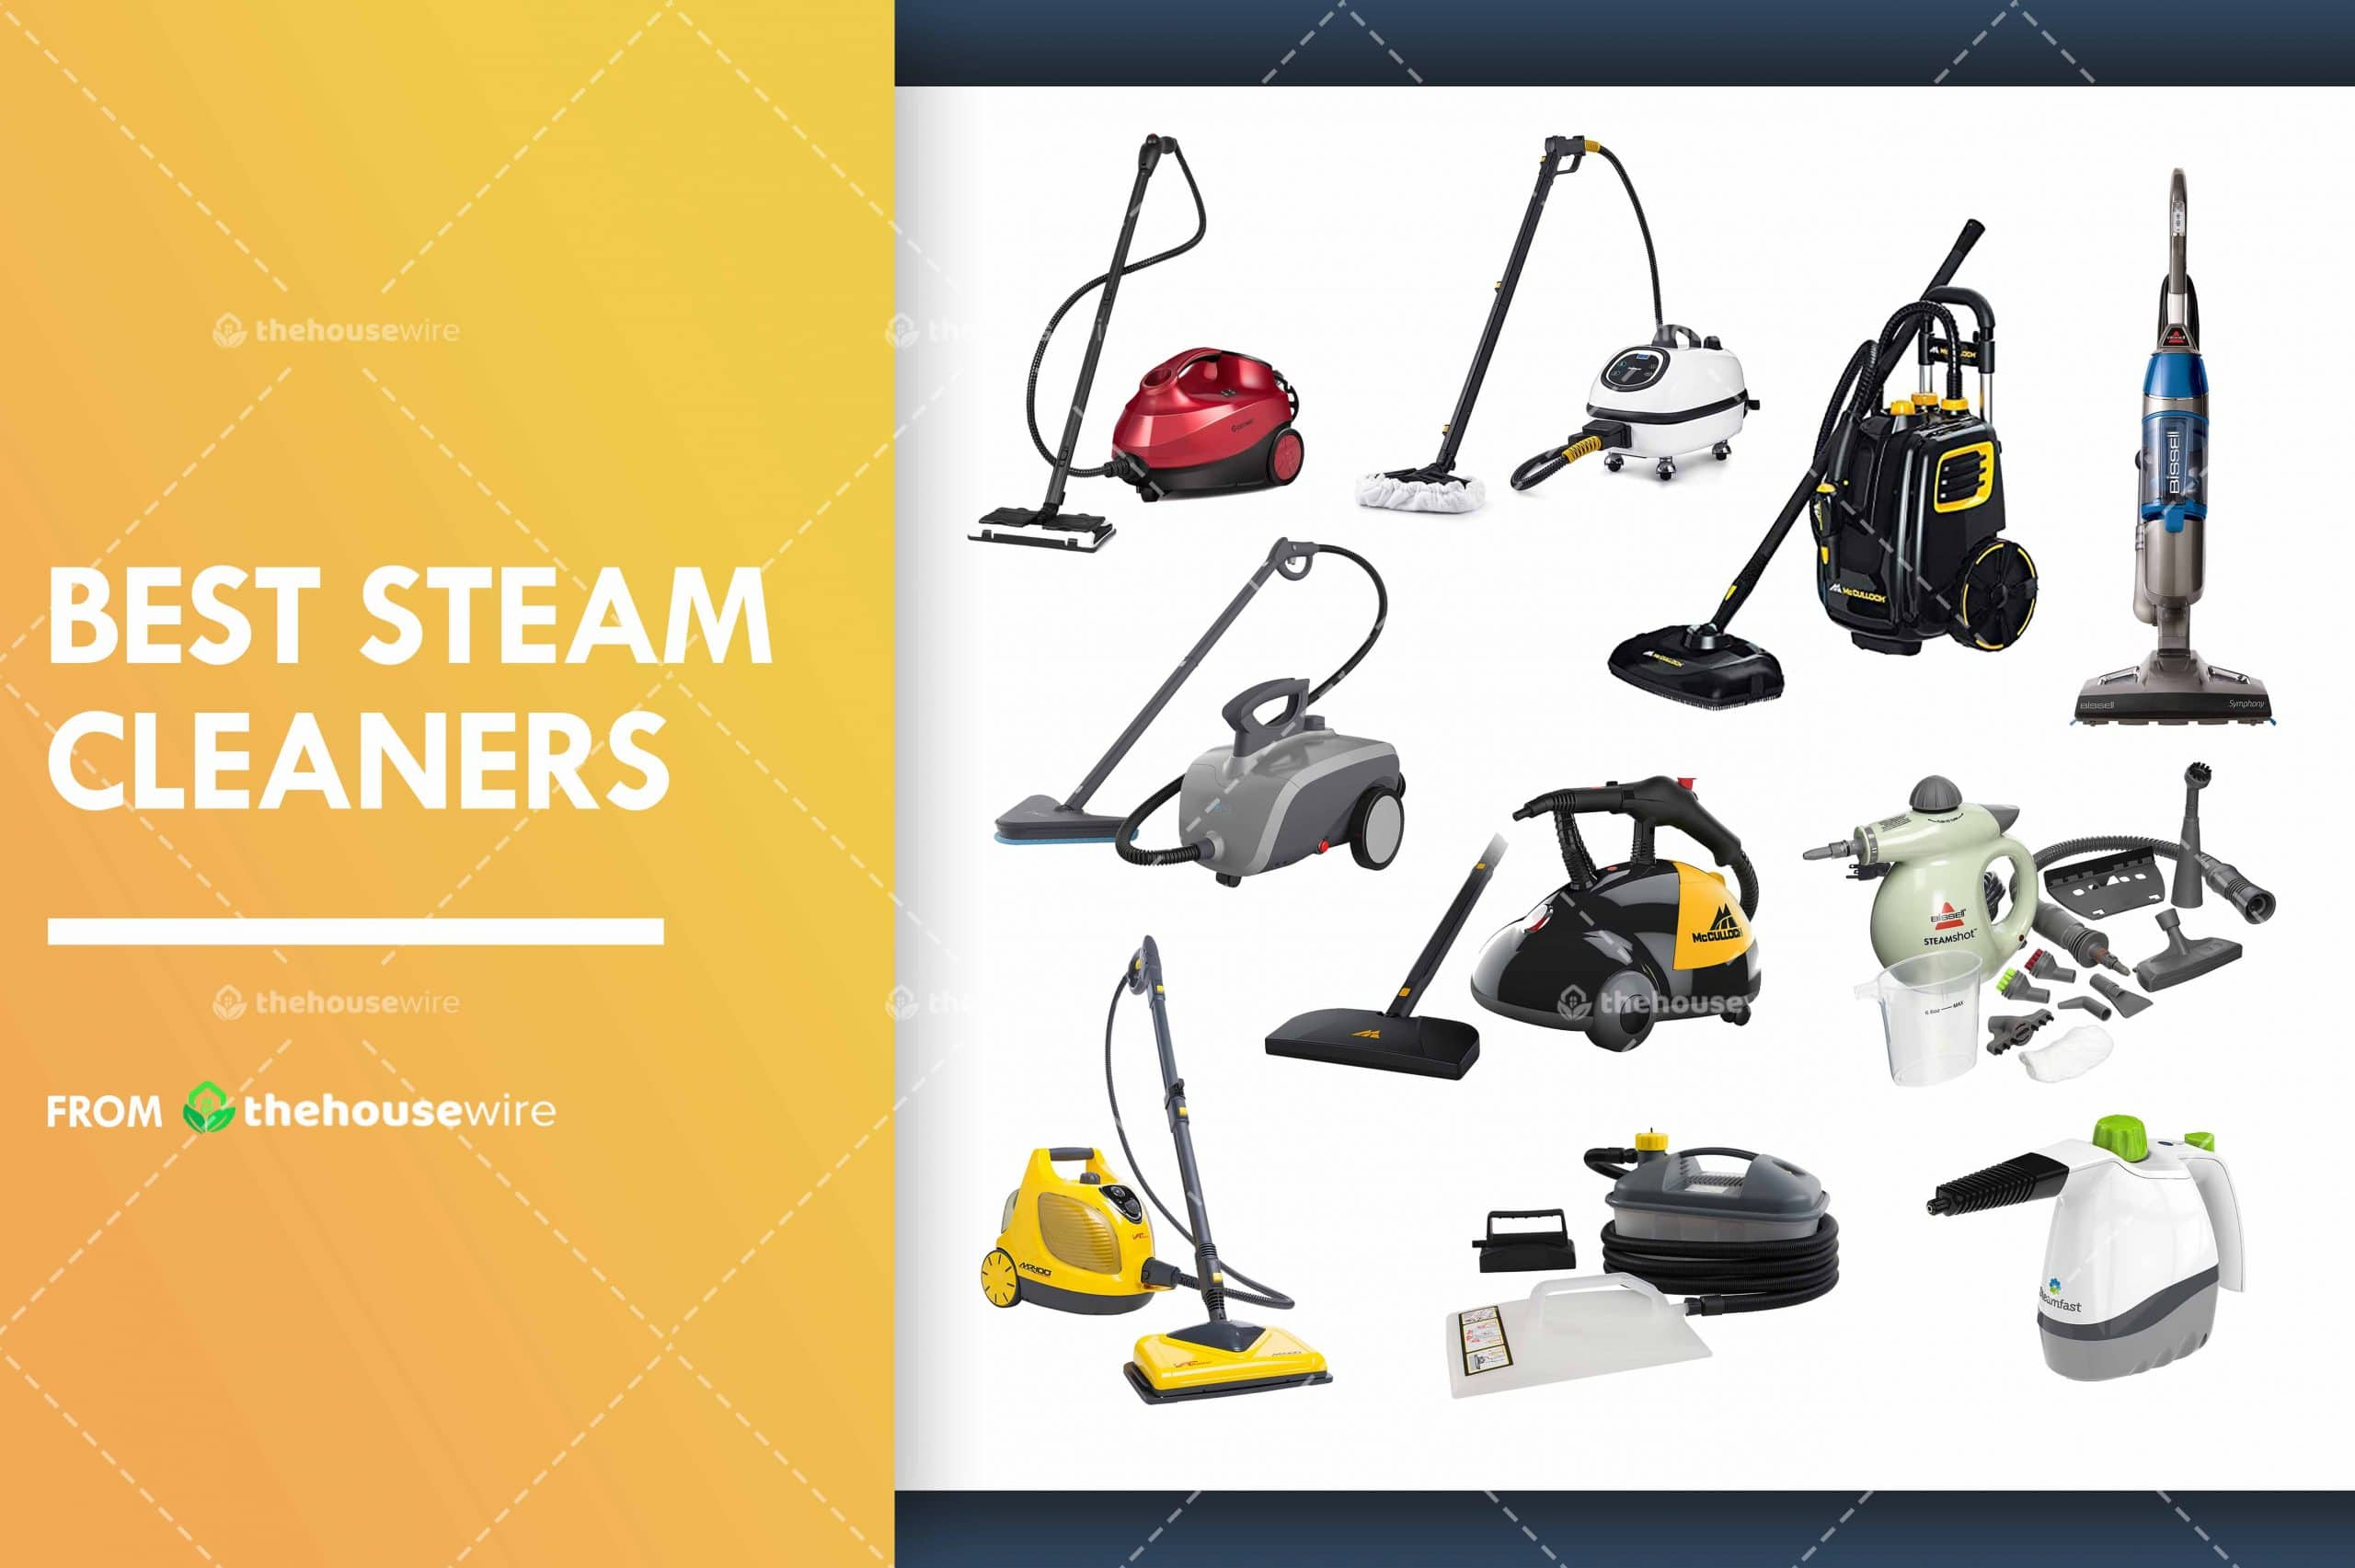 Best Steam Cleaners of 2021